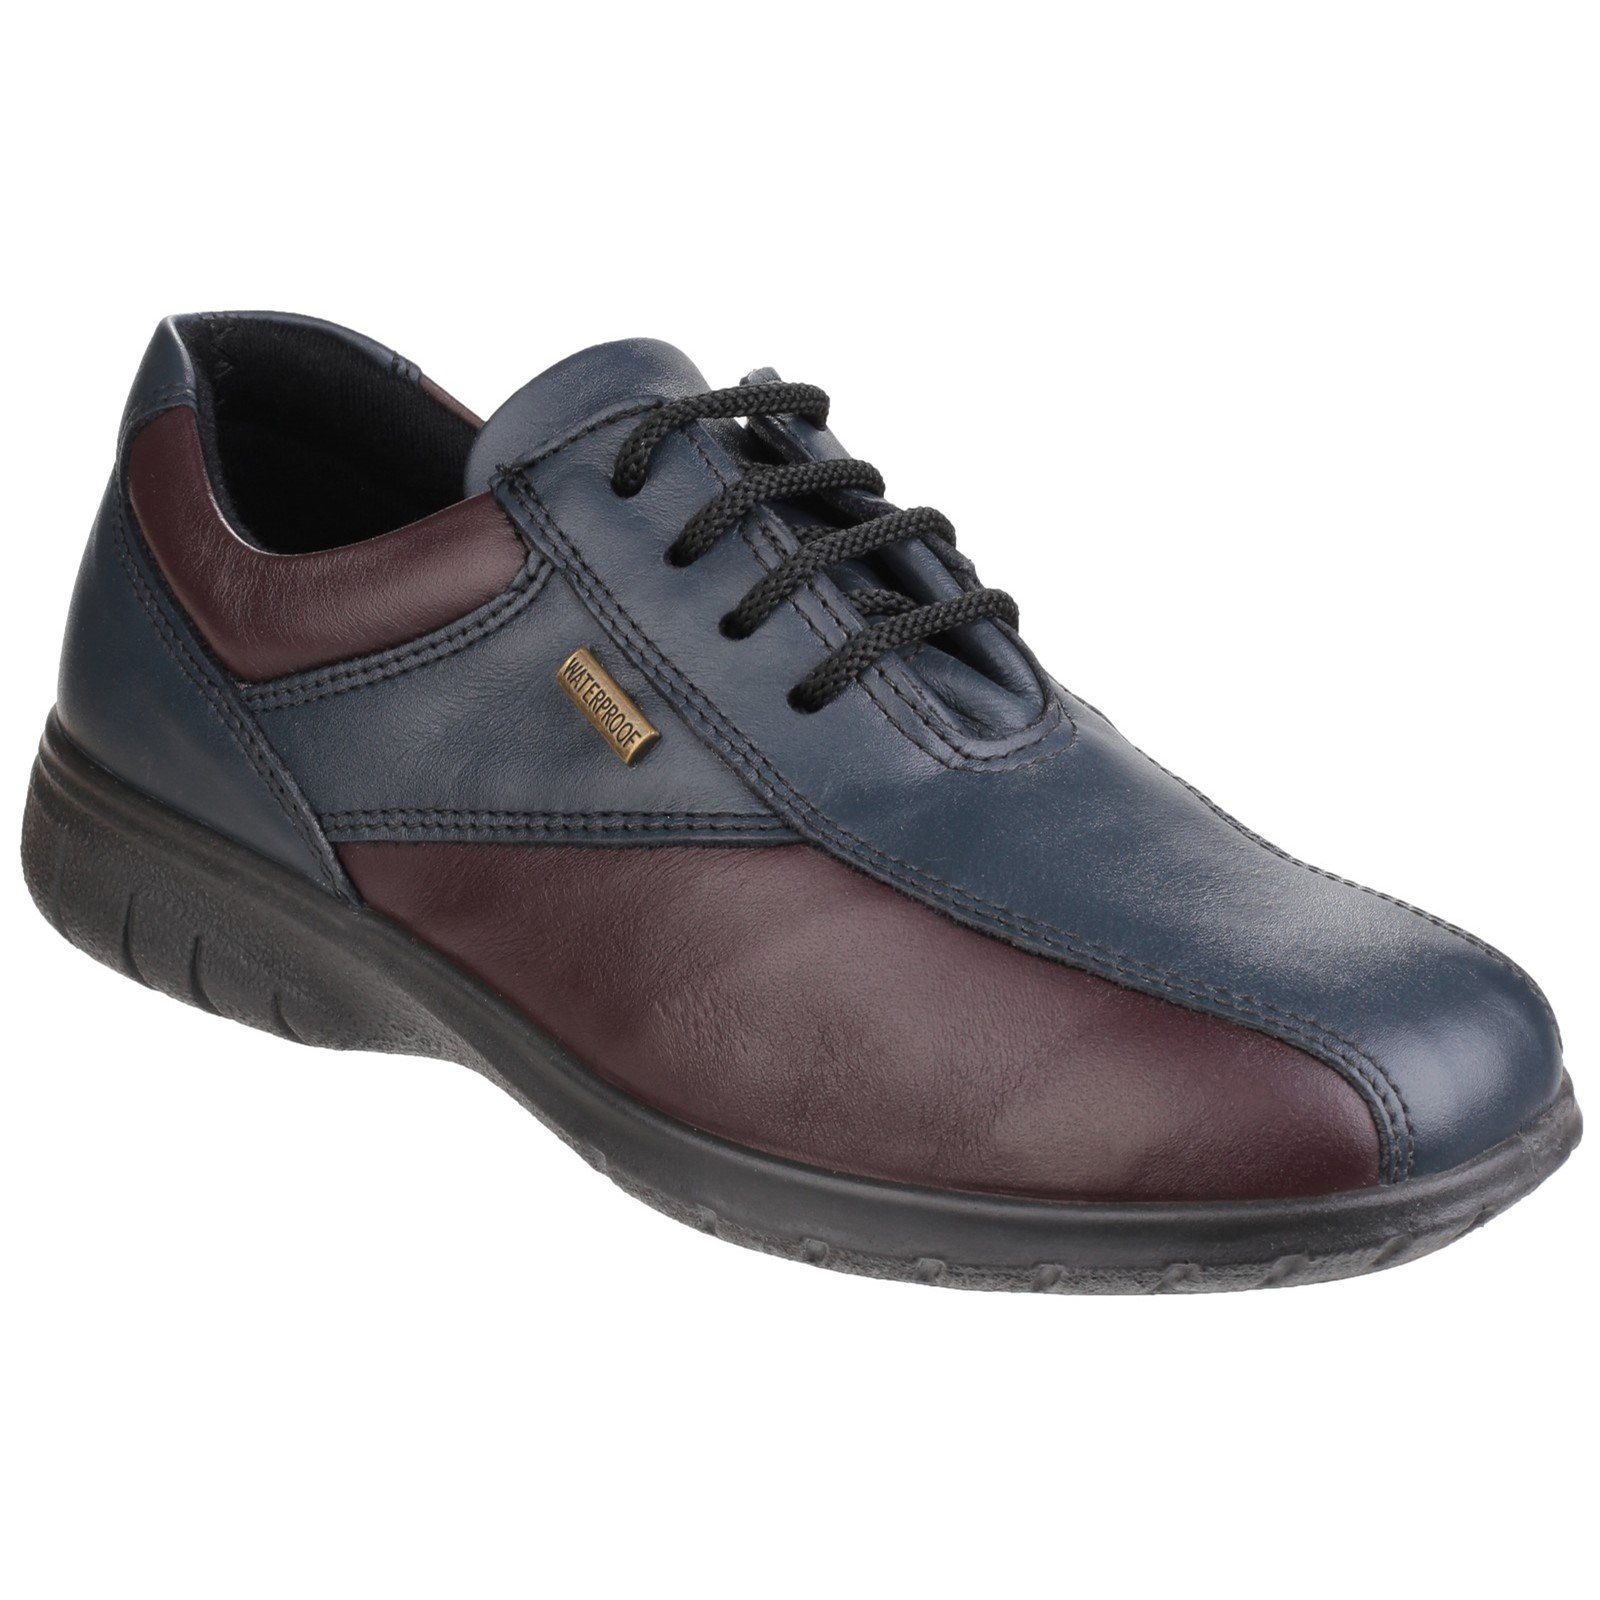 Cotswold Women's Collection Salford Shoe Various Colours 32981 - Navy/Bordo 6